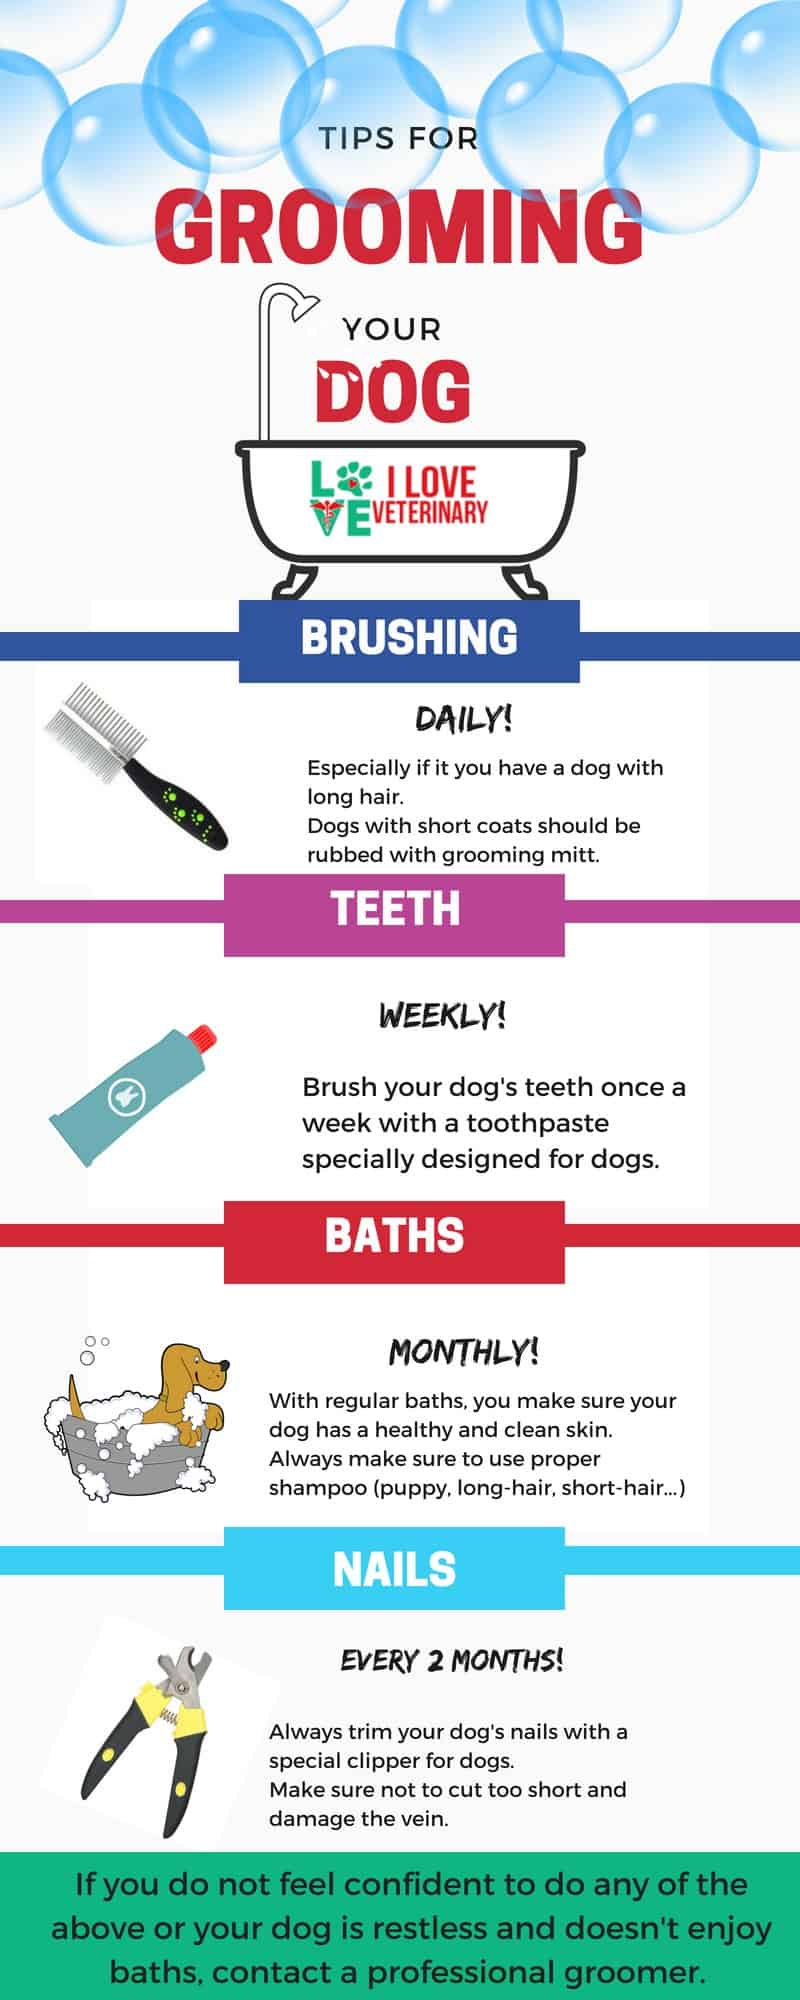 grooming your dog infographic